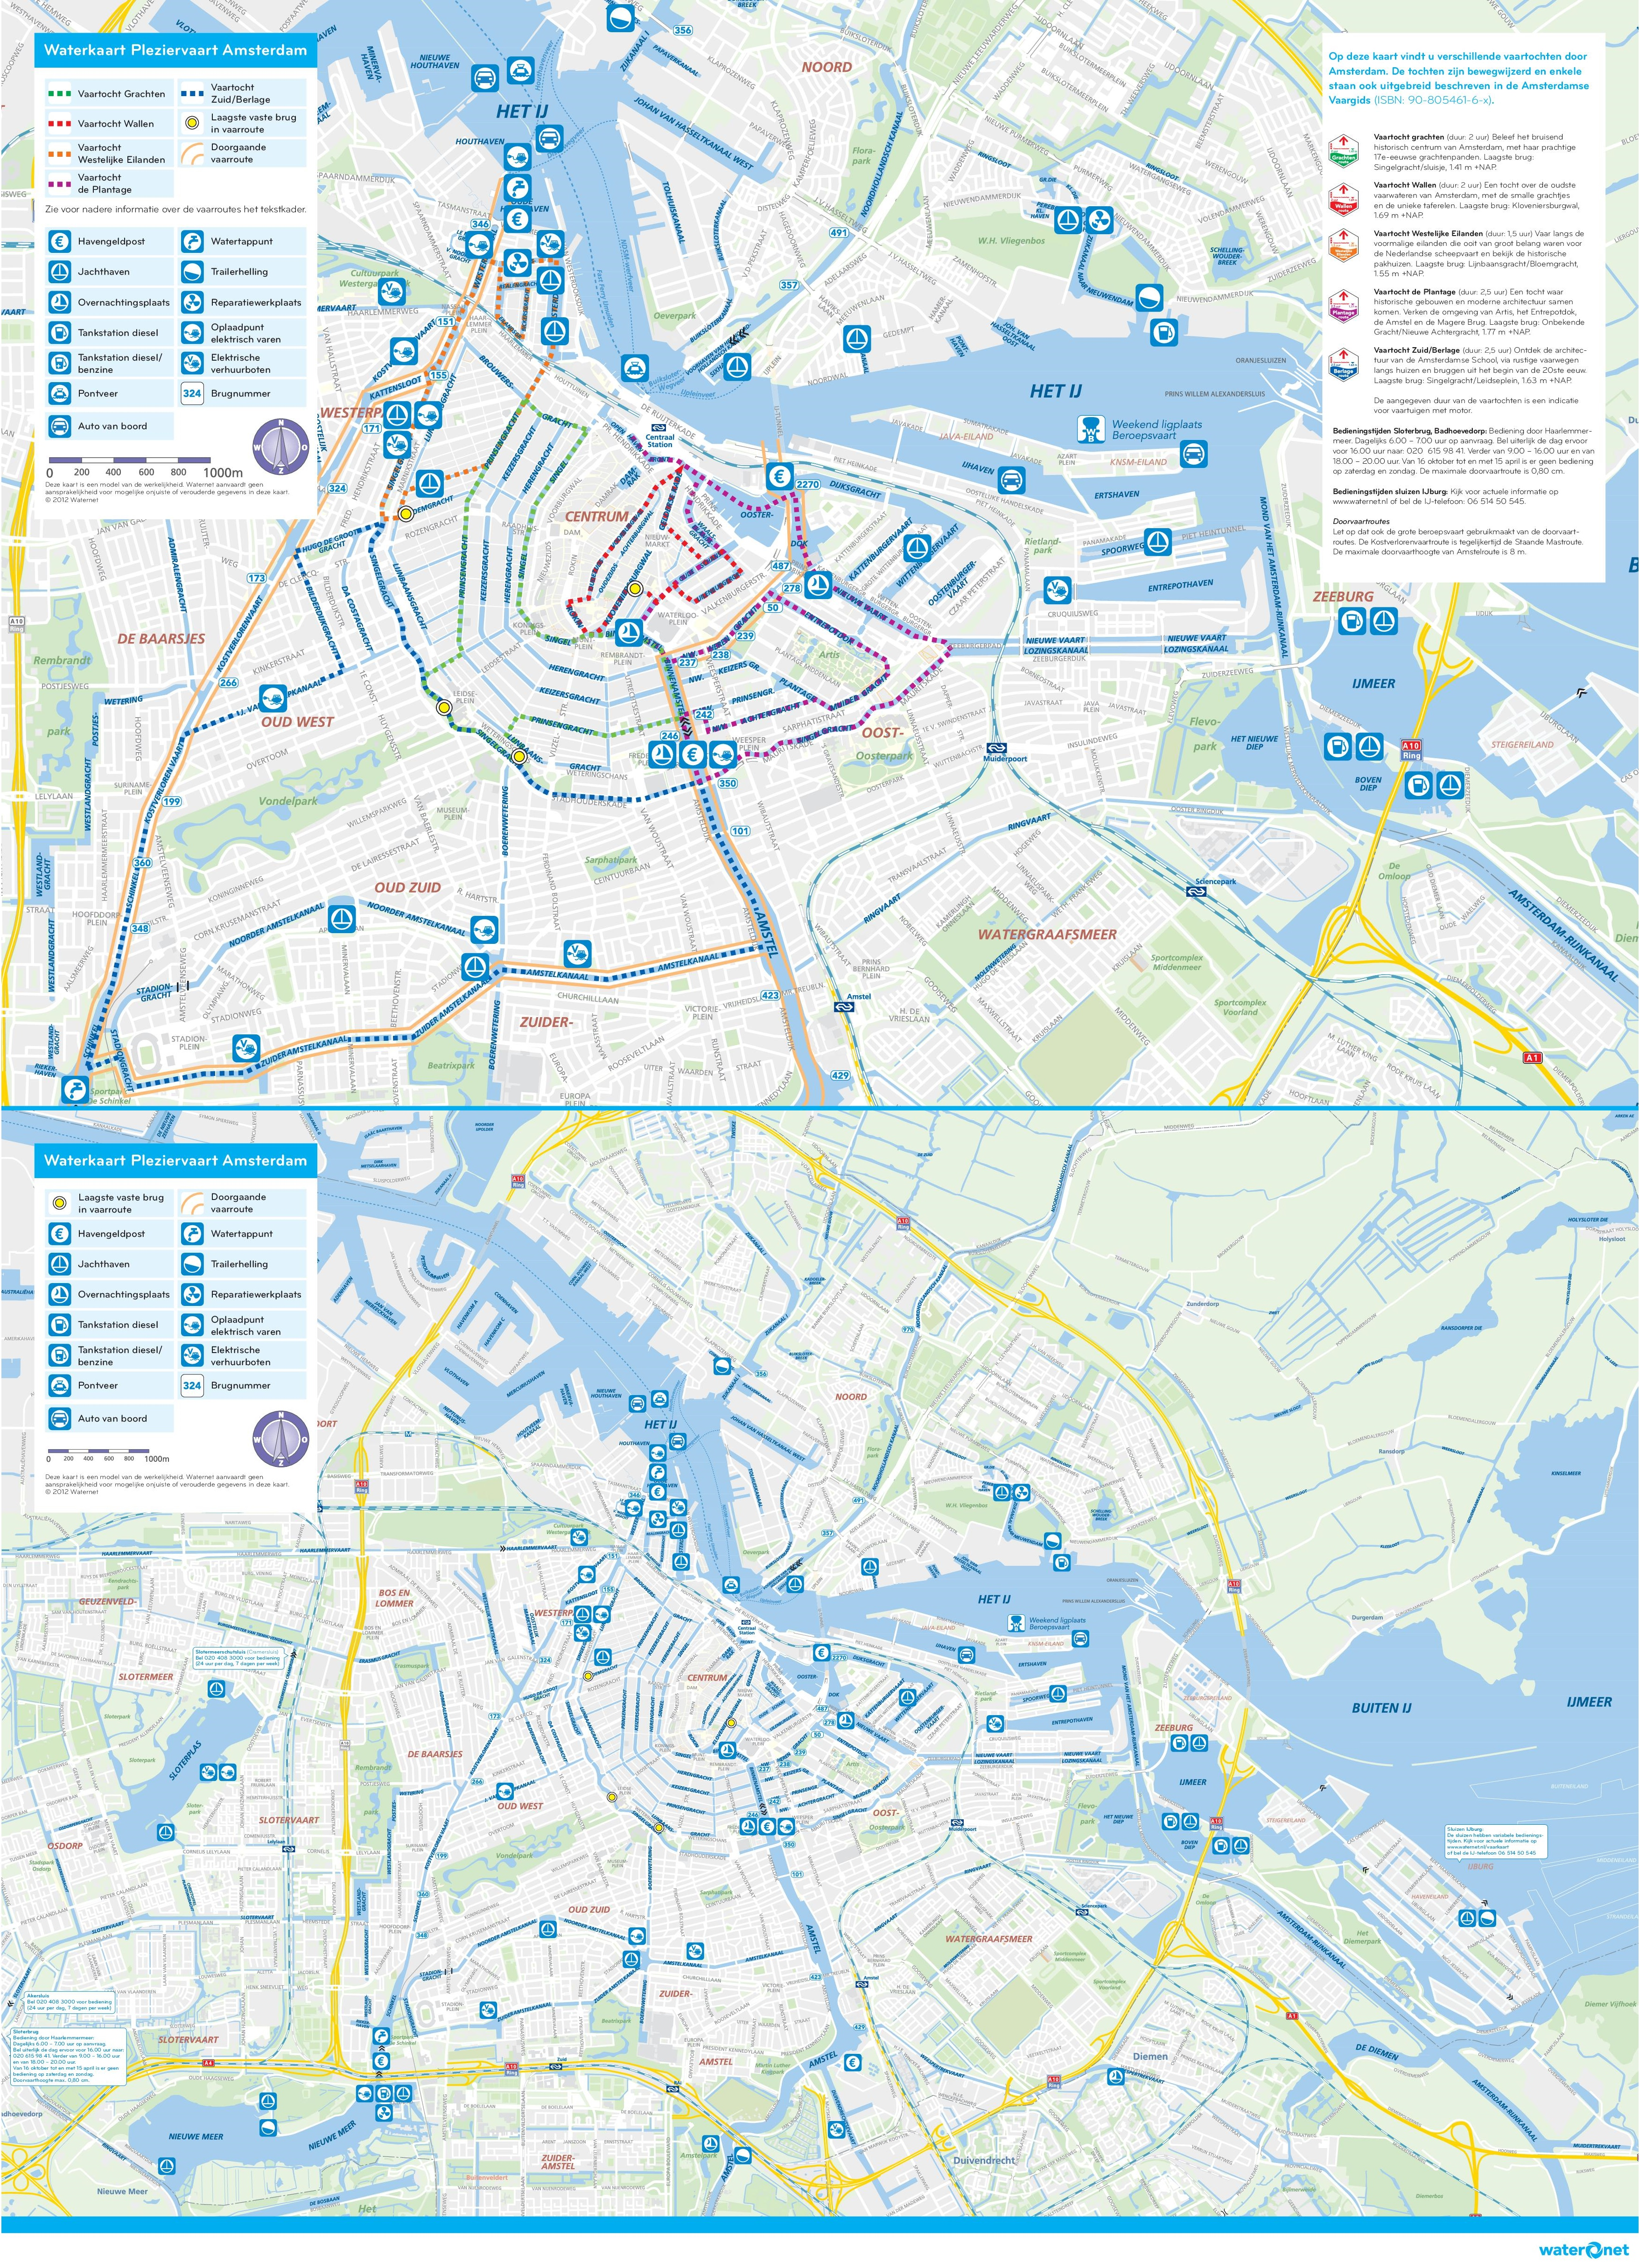 Amsterdam water map on copenhagen map, moscow map, europe map, athens map, holland map, denmark map, israel map, world map, kinderdijk map, the netherlands map, edinburgh map, belgium map, leiden map, madrid map, hamburg map, constantinople map, berlin map, rotterdam map, budapest on map, stockholm on map,